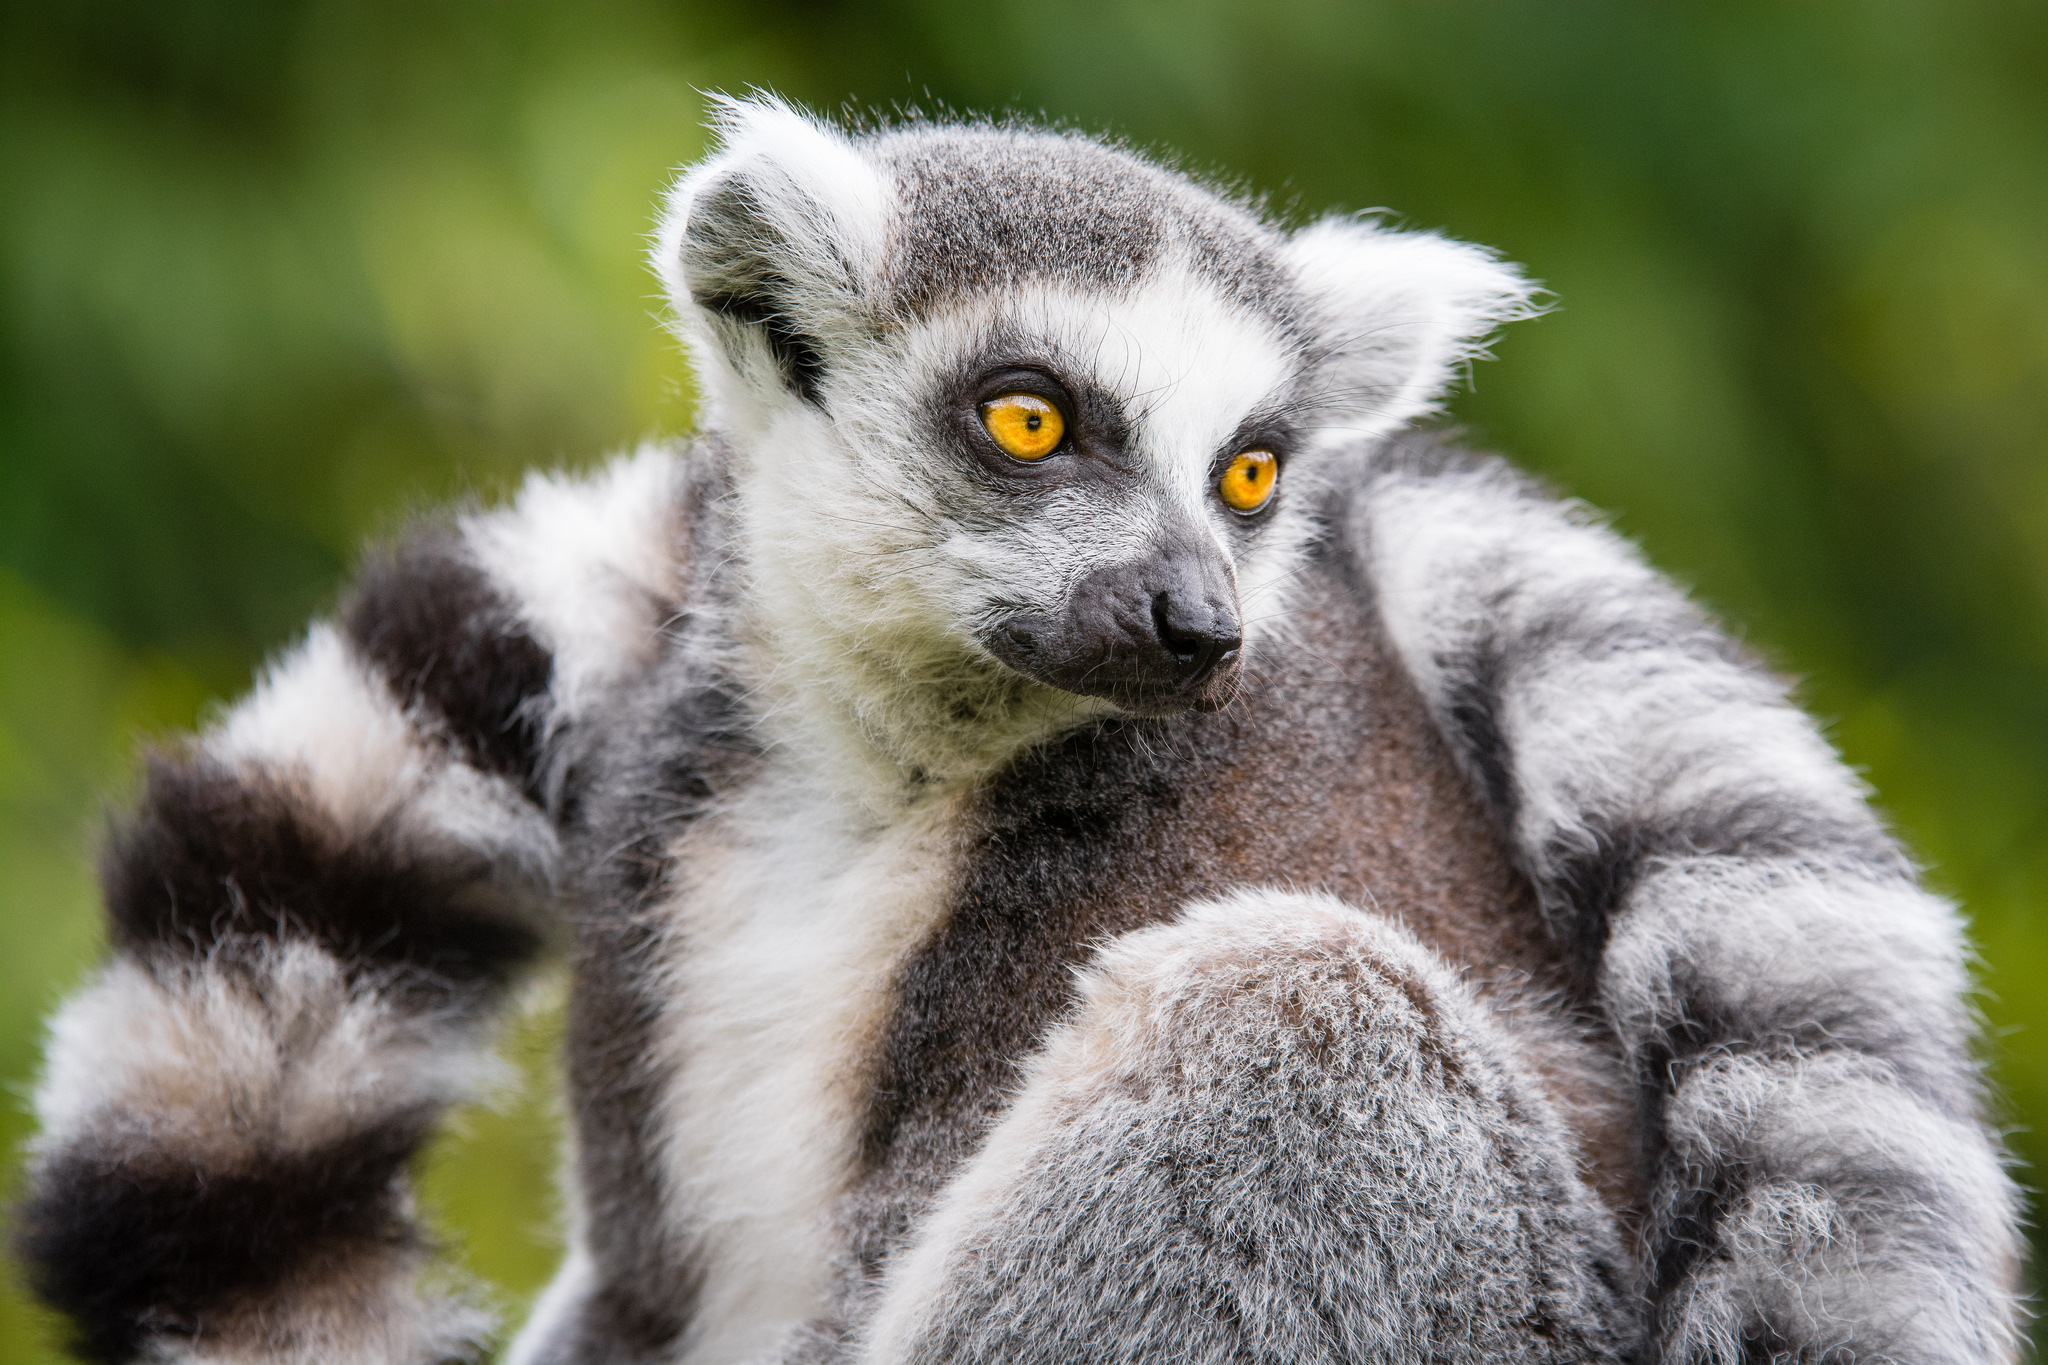 Image of: Africa Viral Video Of Ringtailed Lemur Released In 2016 Had Surprising Result Newsela Newsela Lemurs And Other Wild Animals Put In Danger By Popular